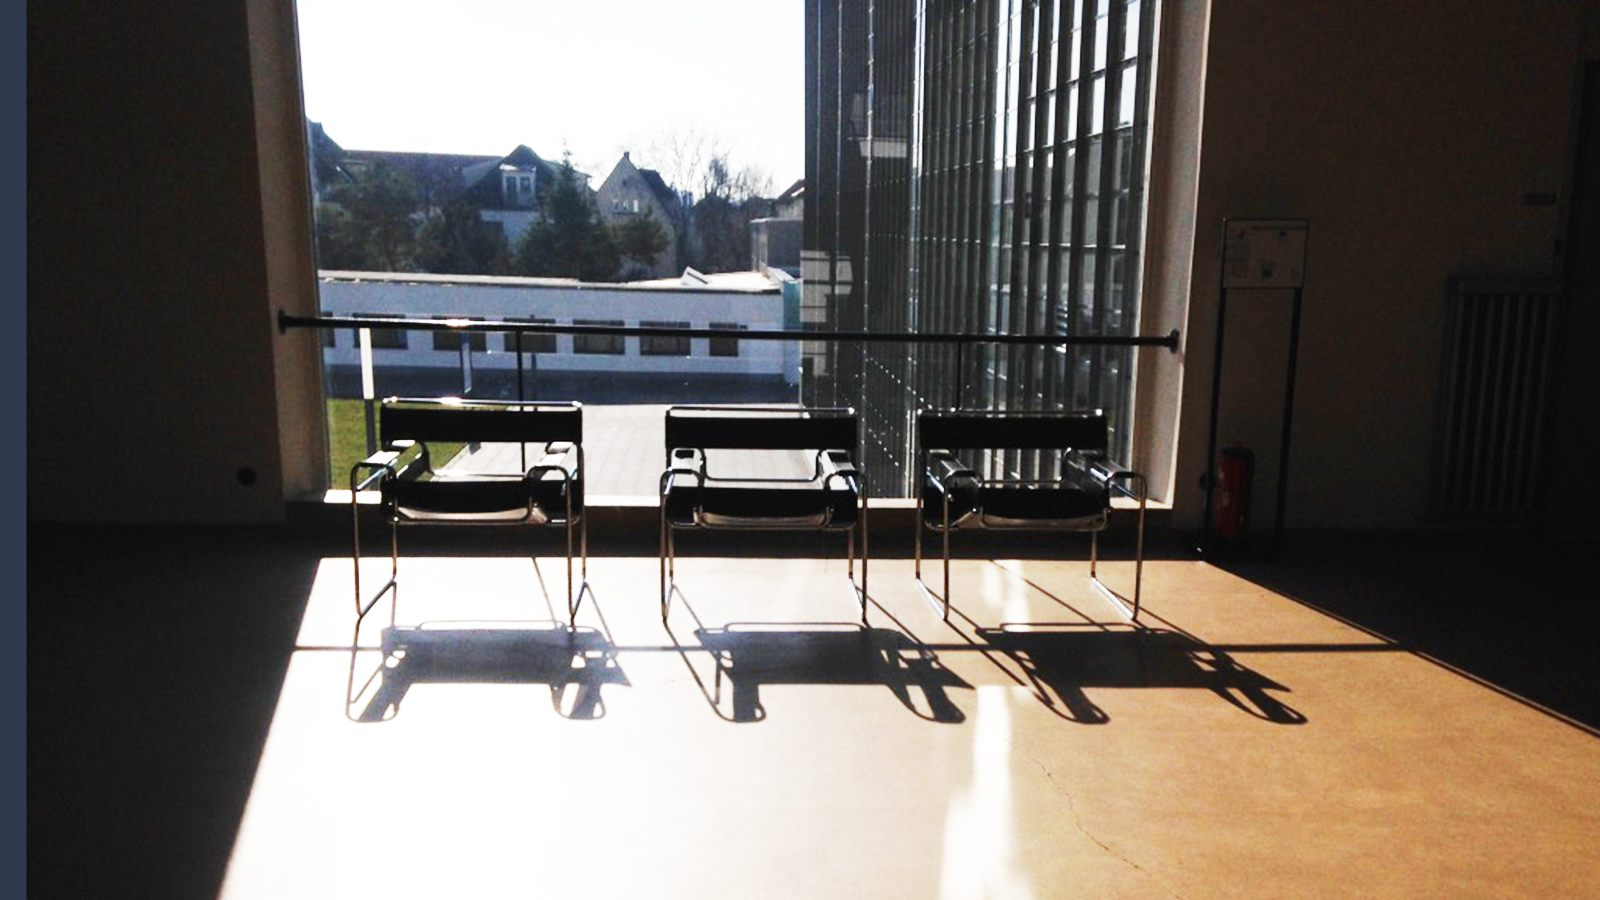 Three kandinsky chairs in front of a window, casting long shadows on the floor